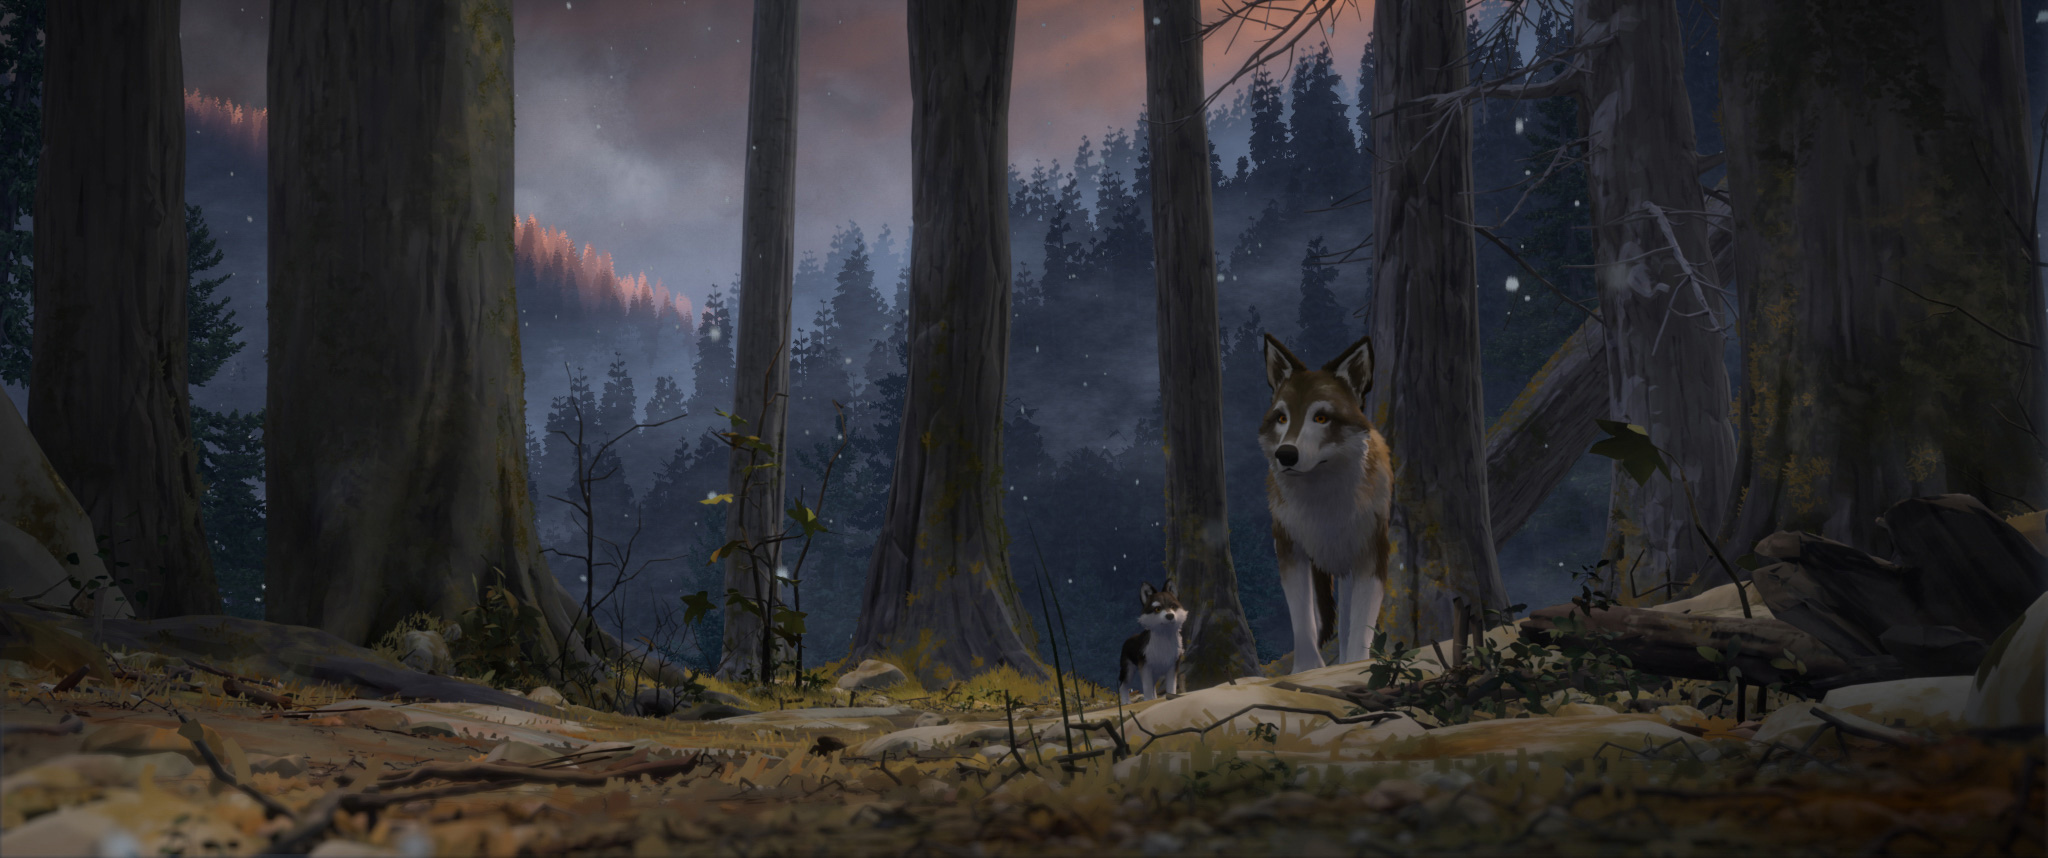 White Fang Review Jack London Story Reimagined In